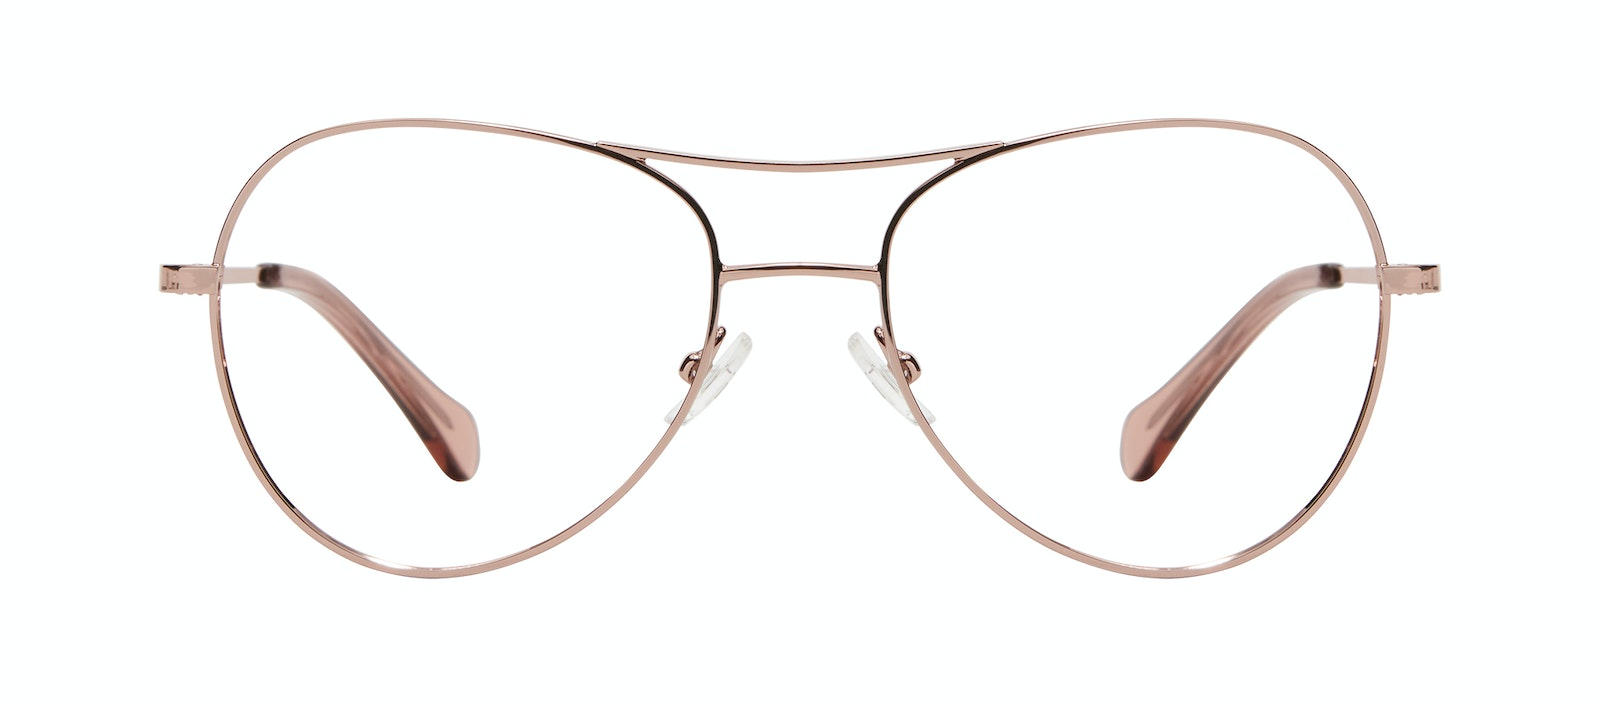 Affordable Fashion Glasses Aviator Eyeglasses Women Want M Rose Gold Front